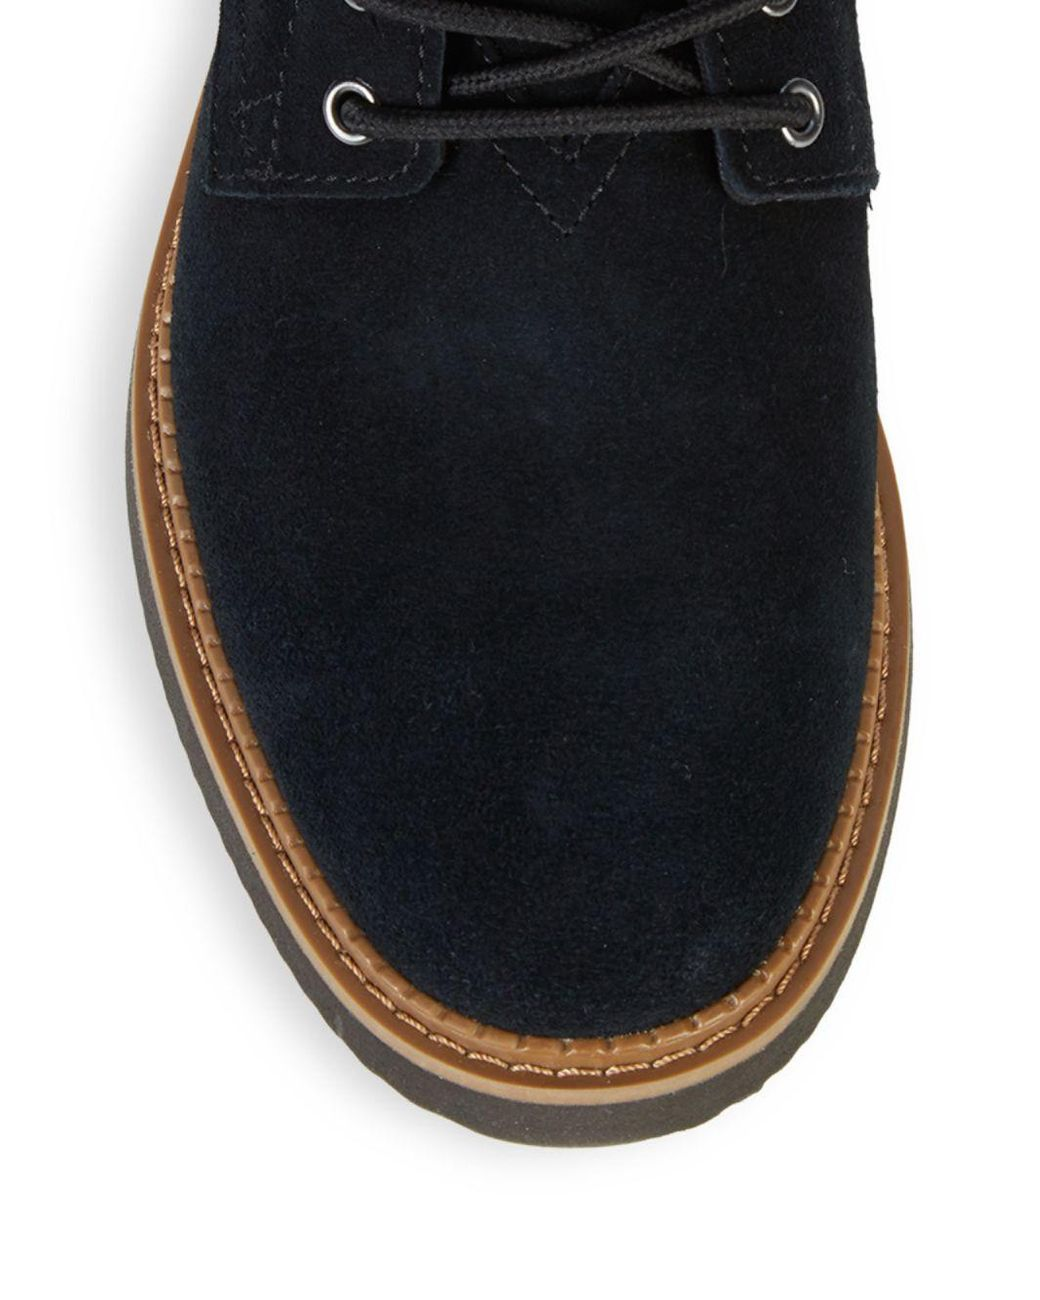 576b2c399d9 Lyst - TOMS Porter Suede Boots in Black for Men - Save 59%